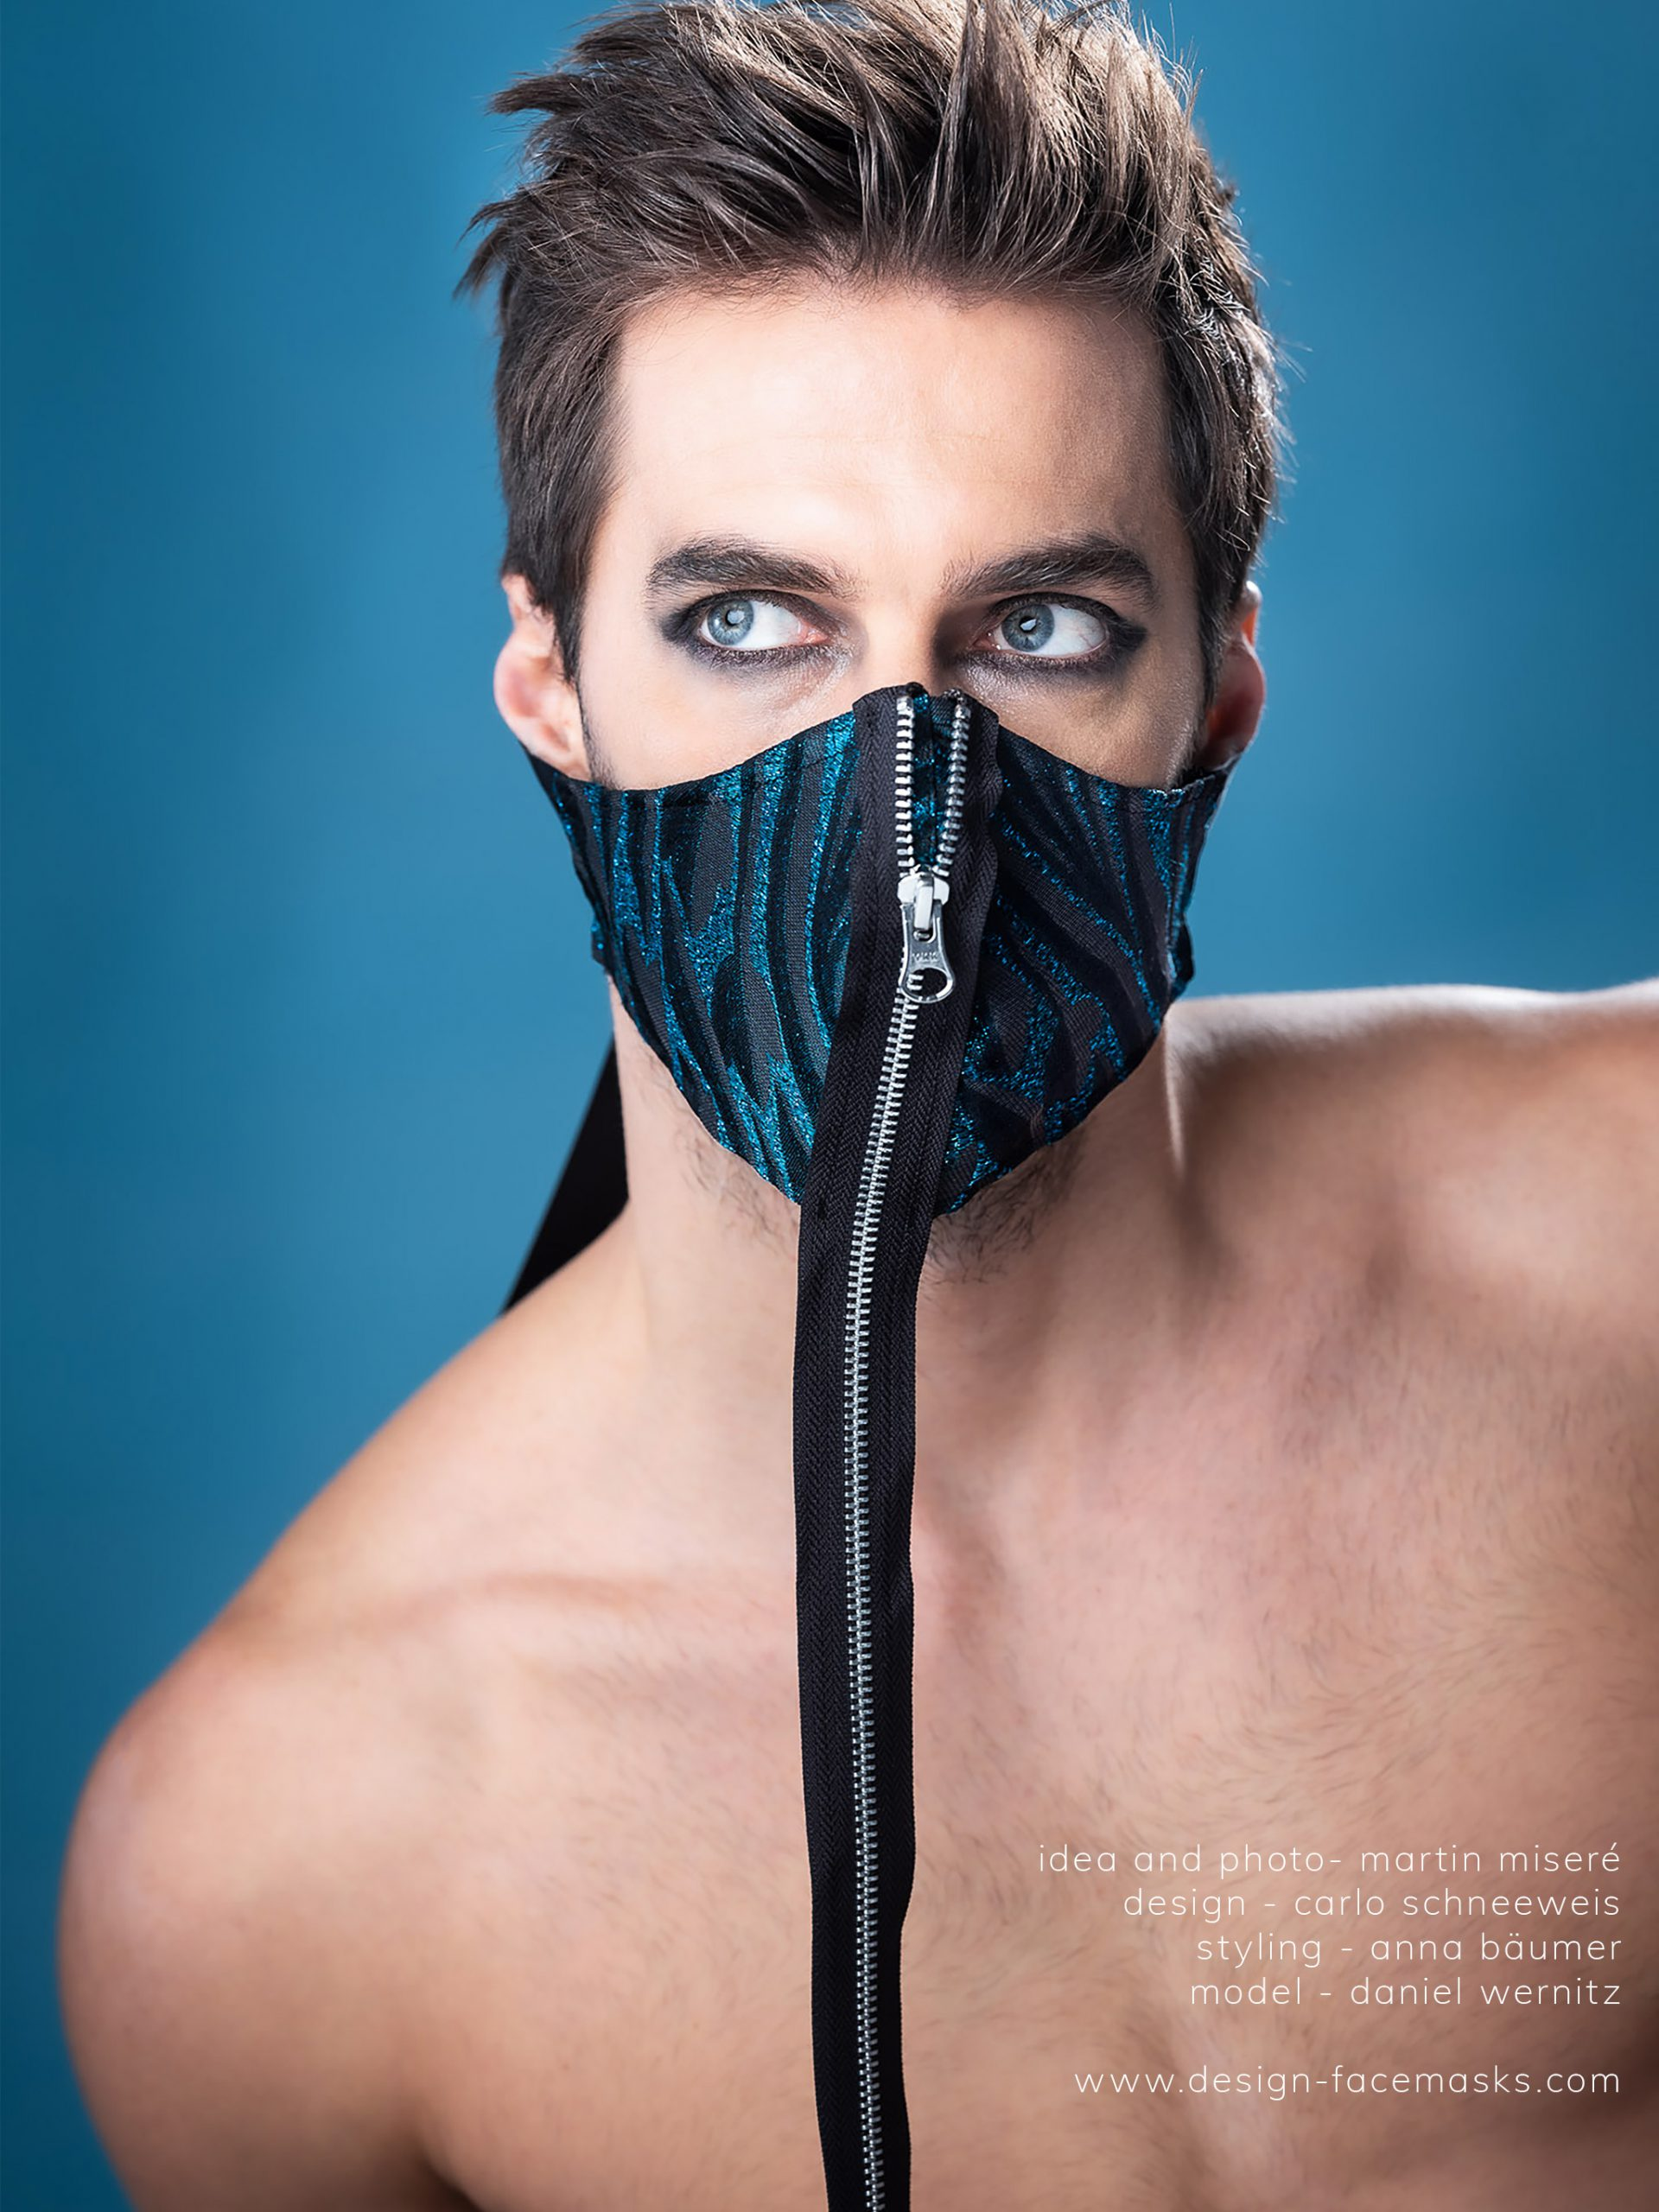 Design Facemask Model Daniel Wernitz wearing facemask of fashion designer Carlo Schneeweis photographed by Martin Misere